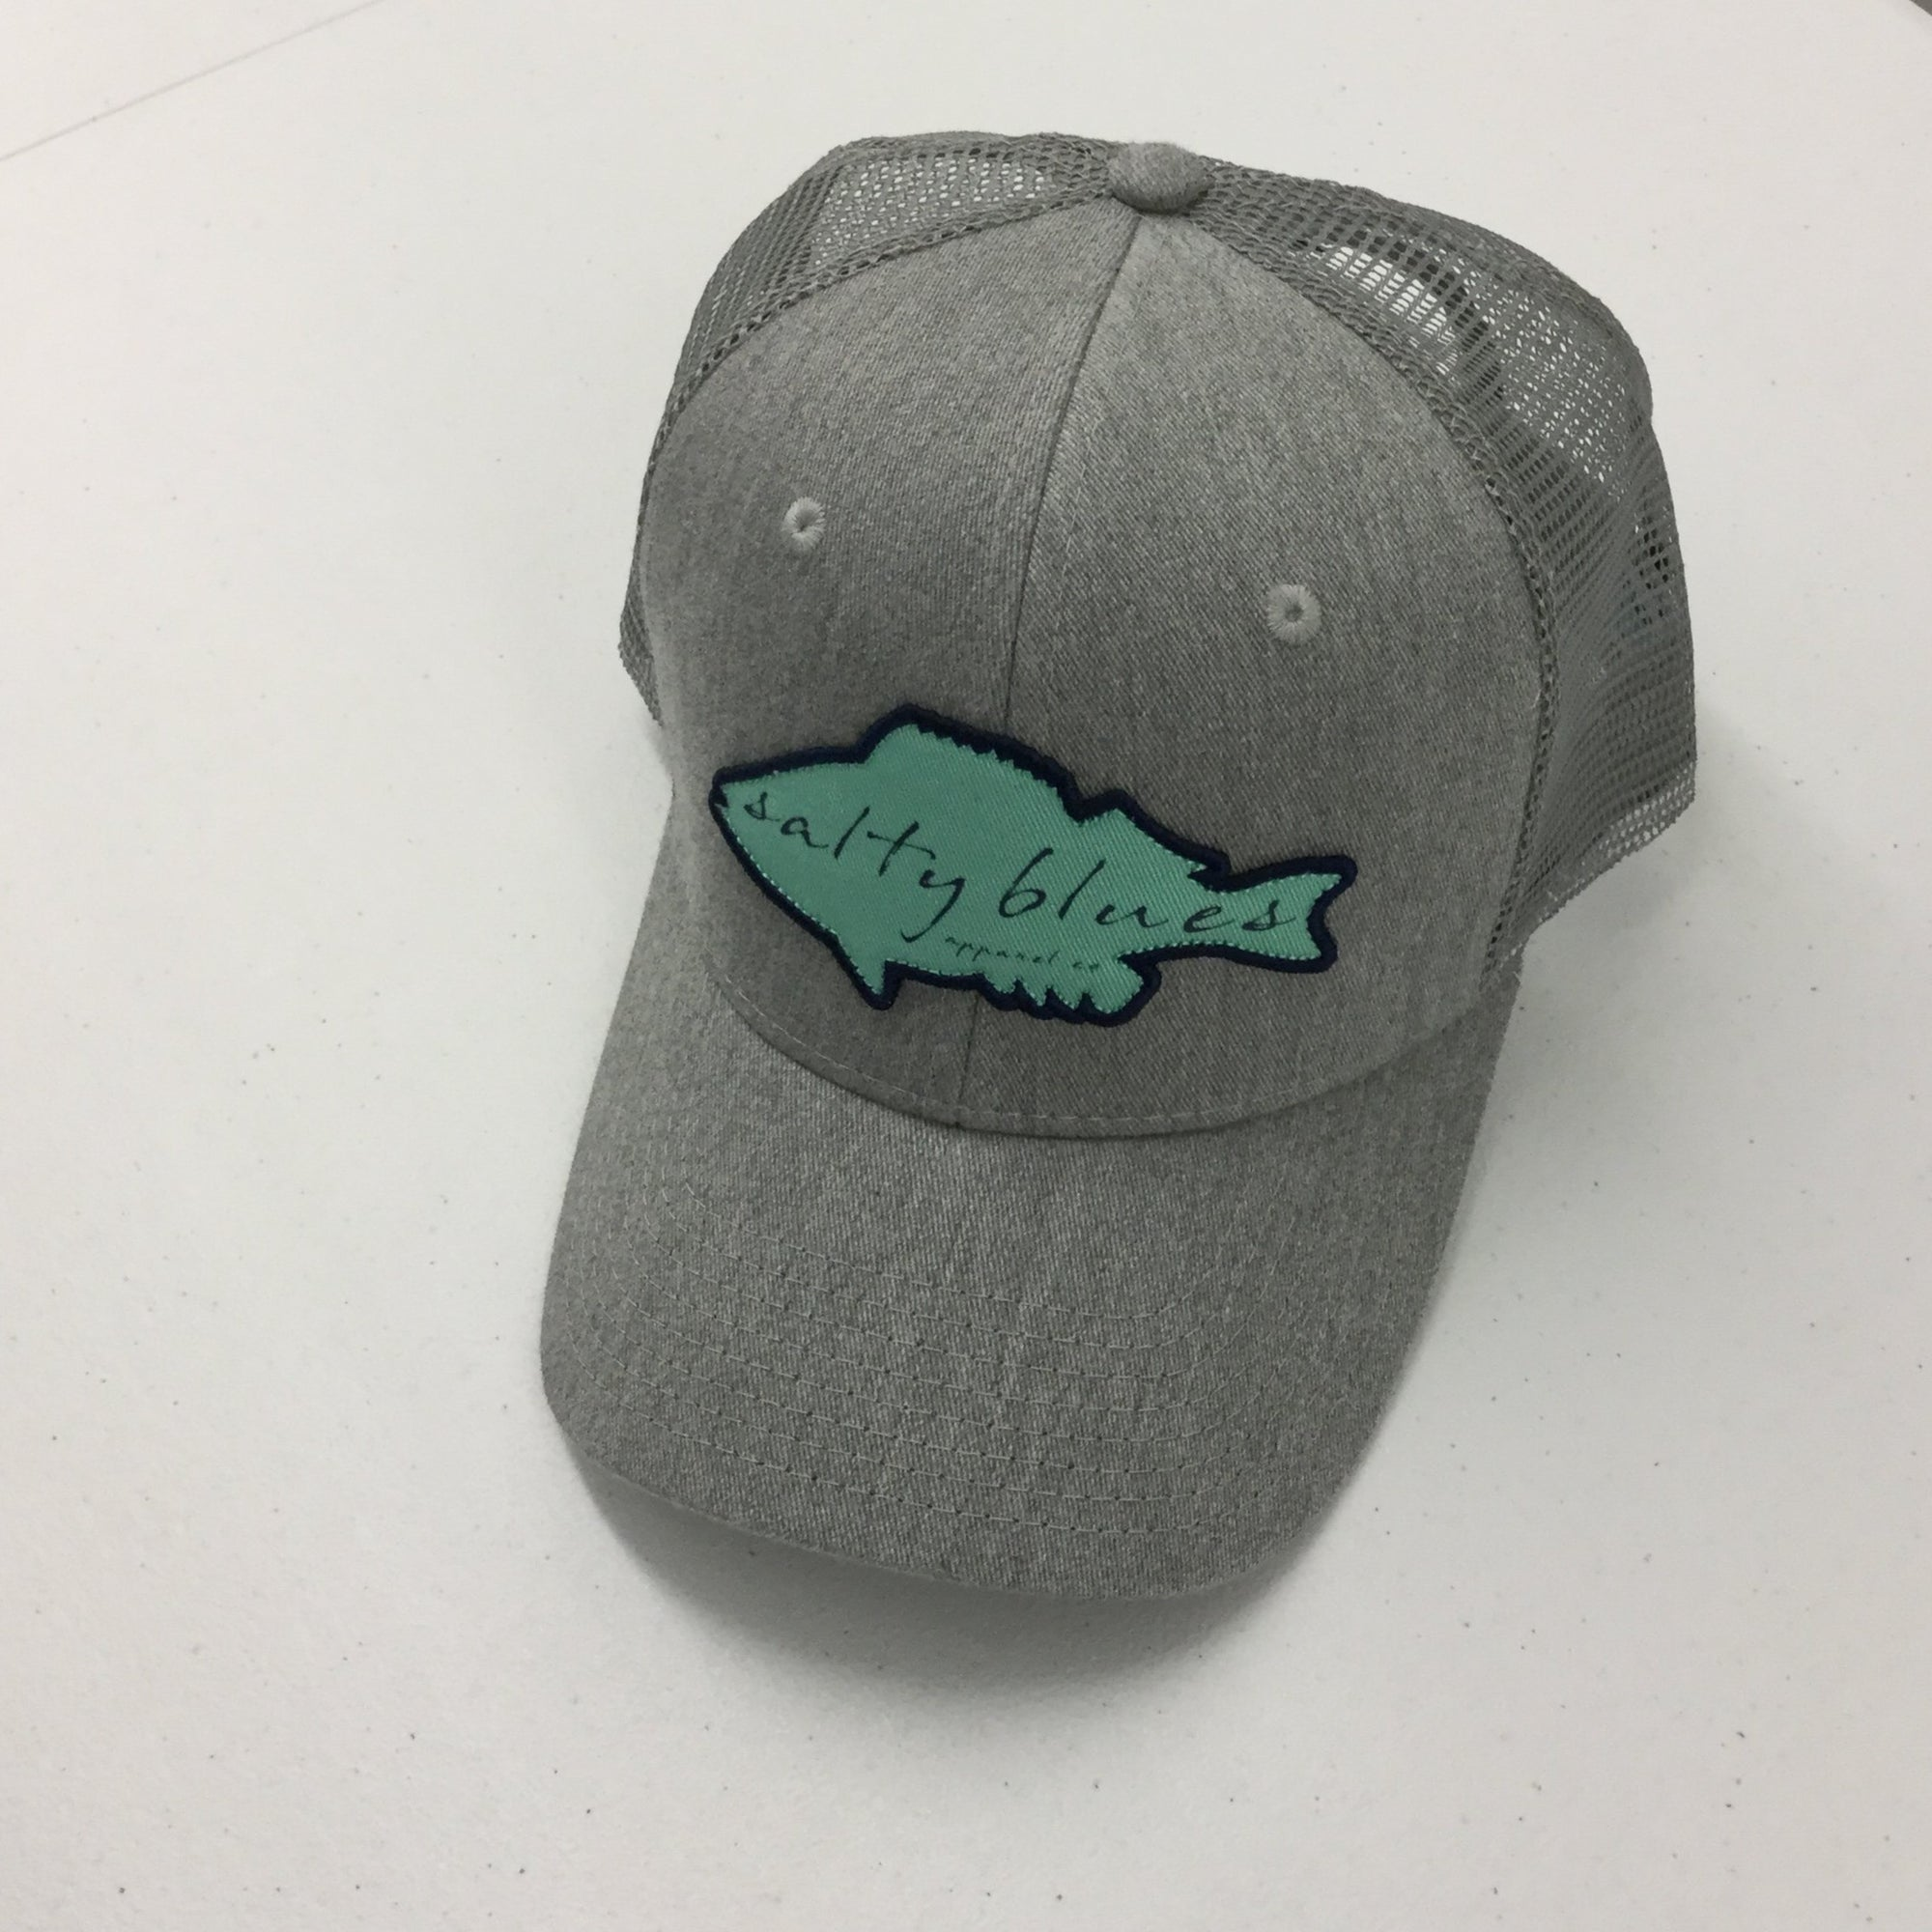 Deep Waters Trucker Hat - Hats - Latitudes & Attitudes LLC